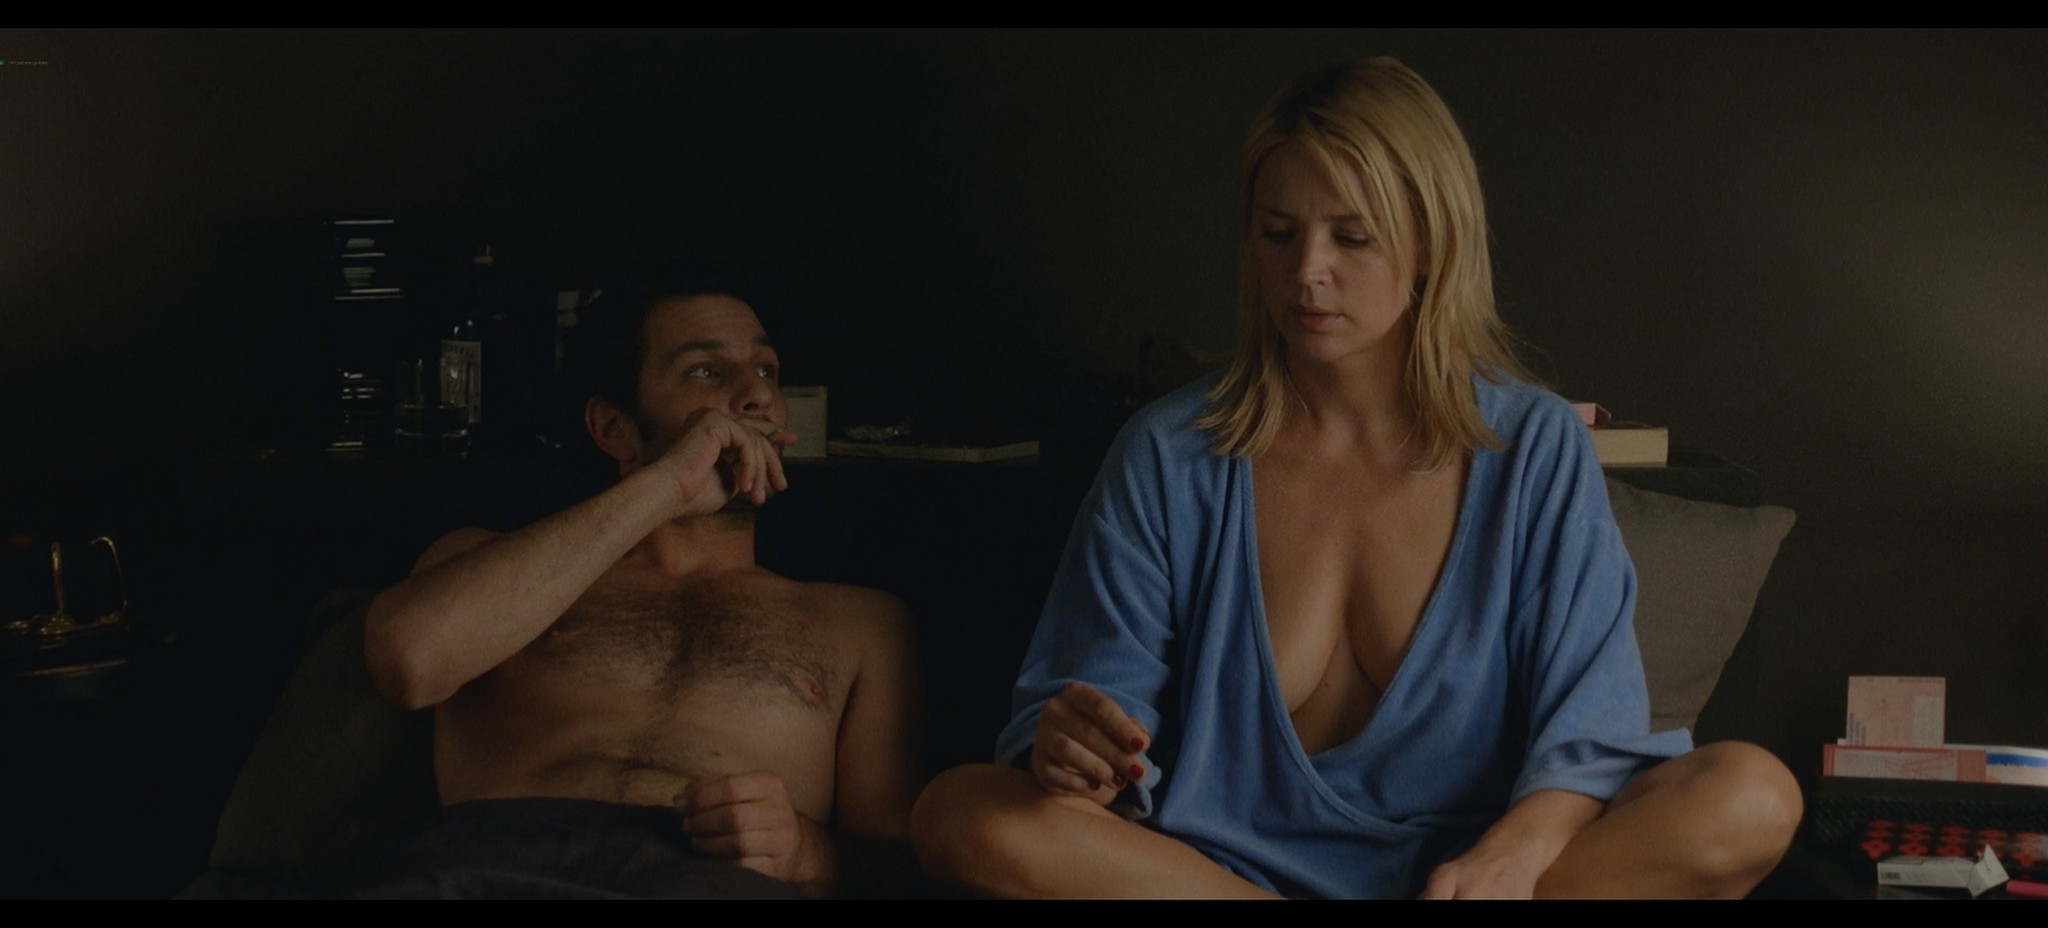 Virginie Efira nude topless and sex Victoria FR 2016 HD 1080p BluRay REMUX 4